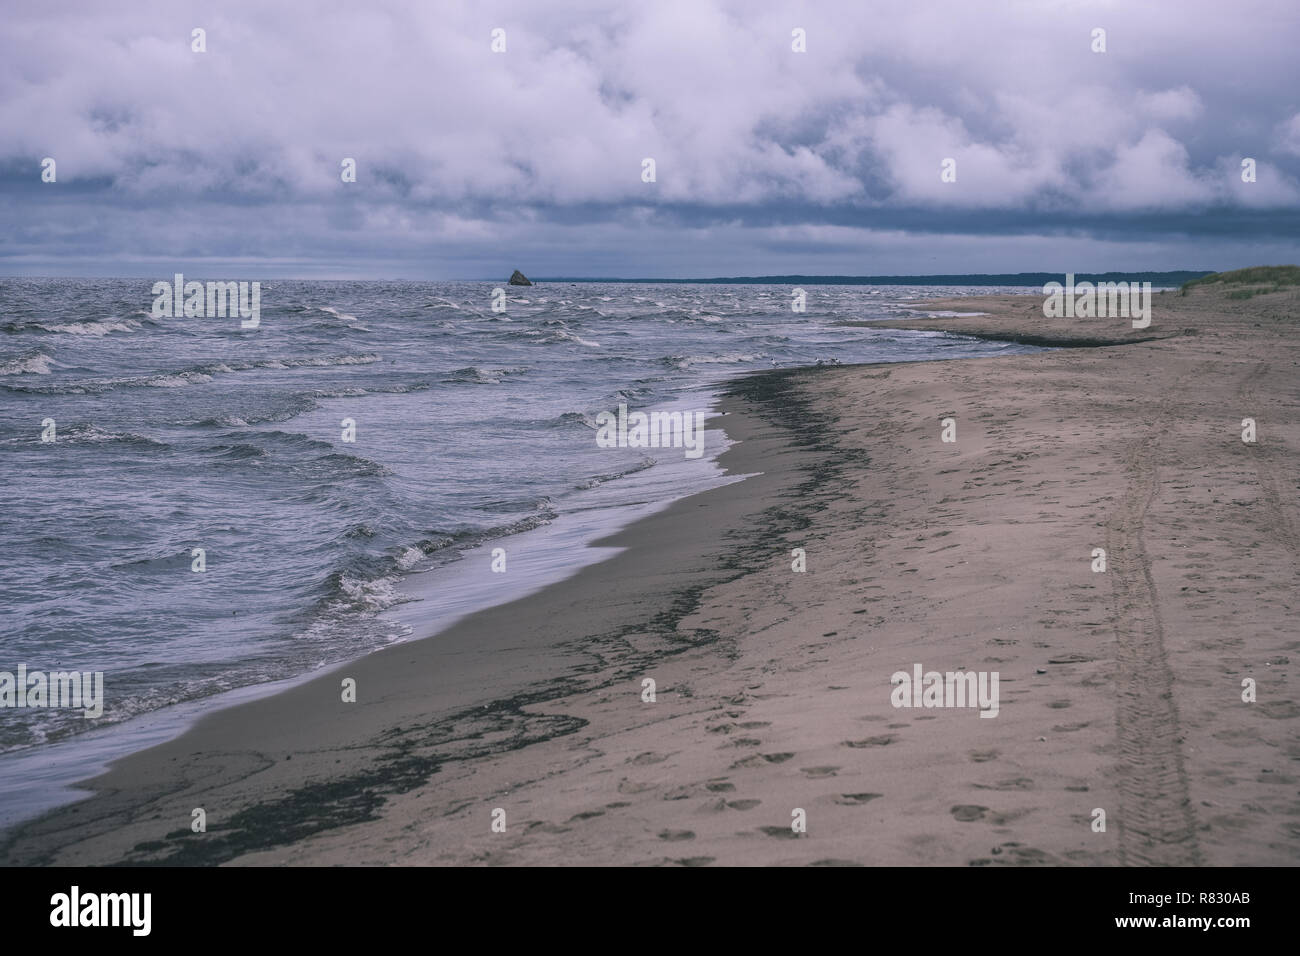 dirty beach by the sea with storm clouds above in calm evening - vintage old film look - Stock Image